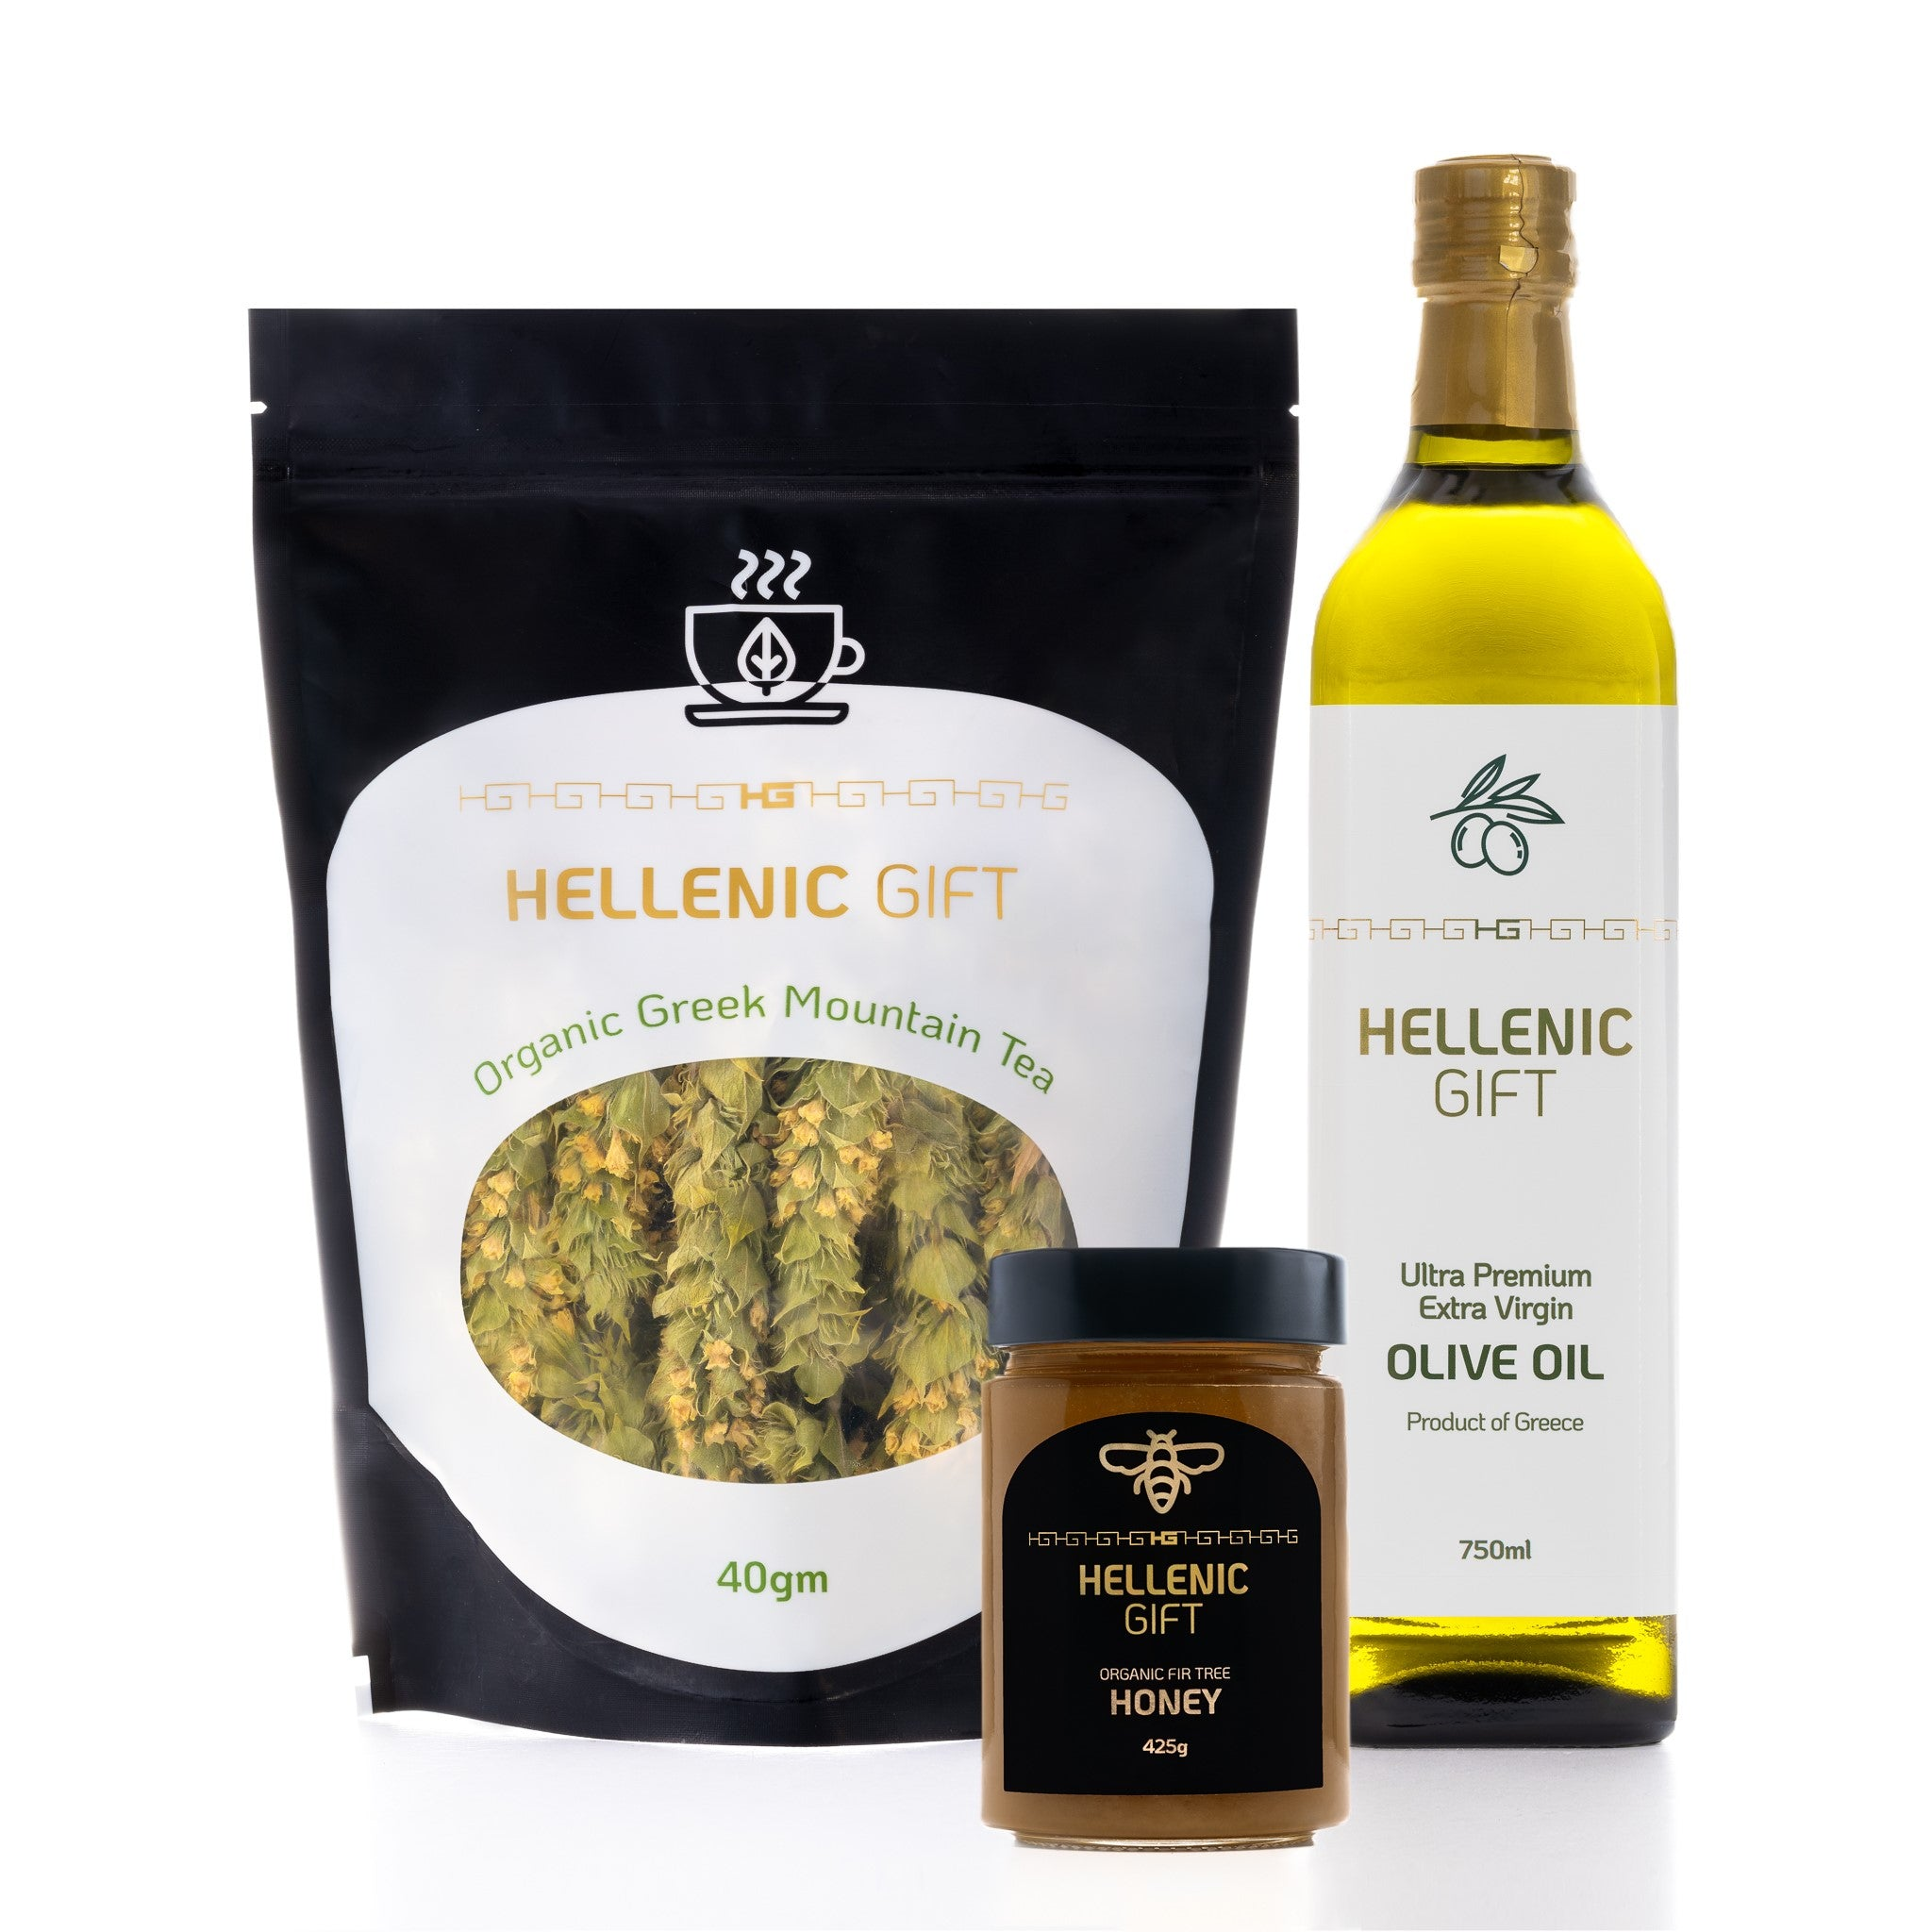 Load image into Gallery viewer, The Hellenic Gift Sample Pack 1 includes One Premium Bottle of Extra Virgin Olive Oil, 1 jar of Organic Honey and 1 40 gram bag of Greek Mountain Tea